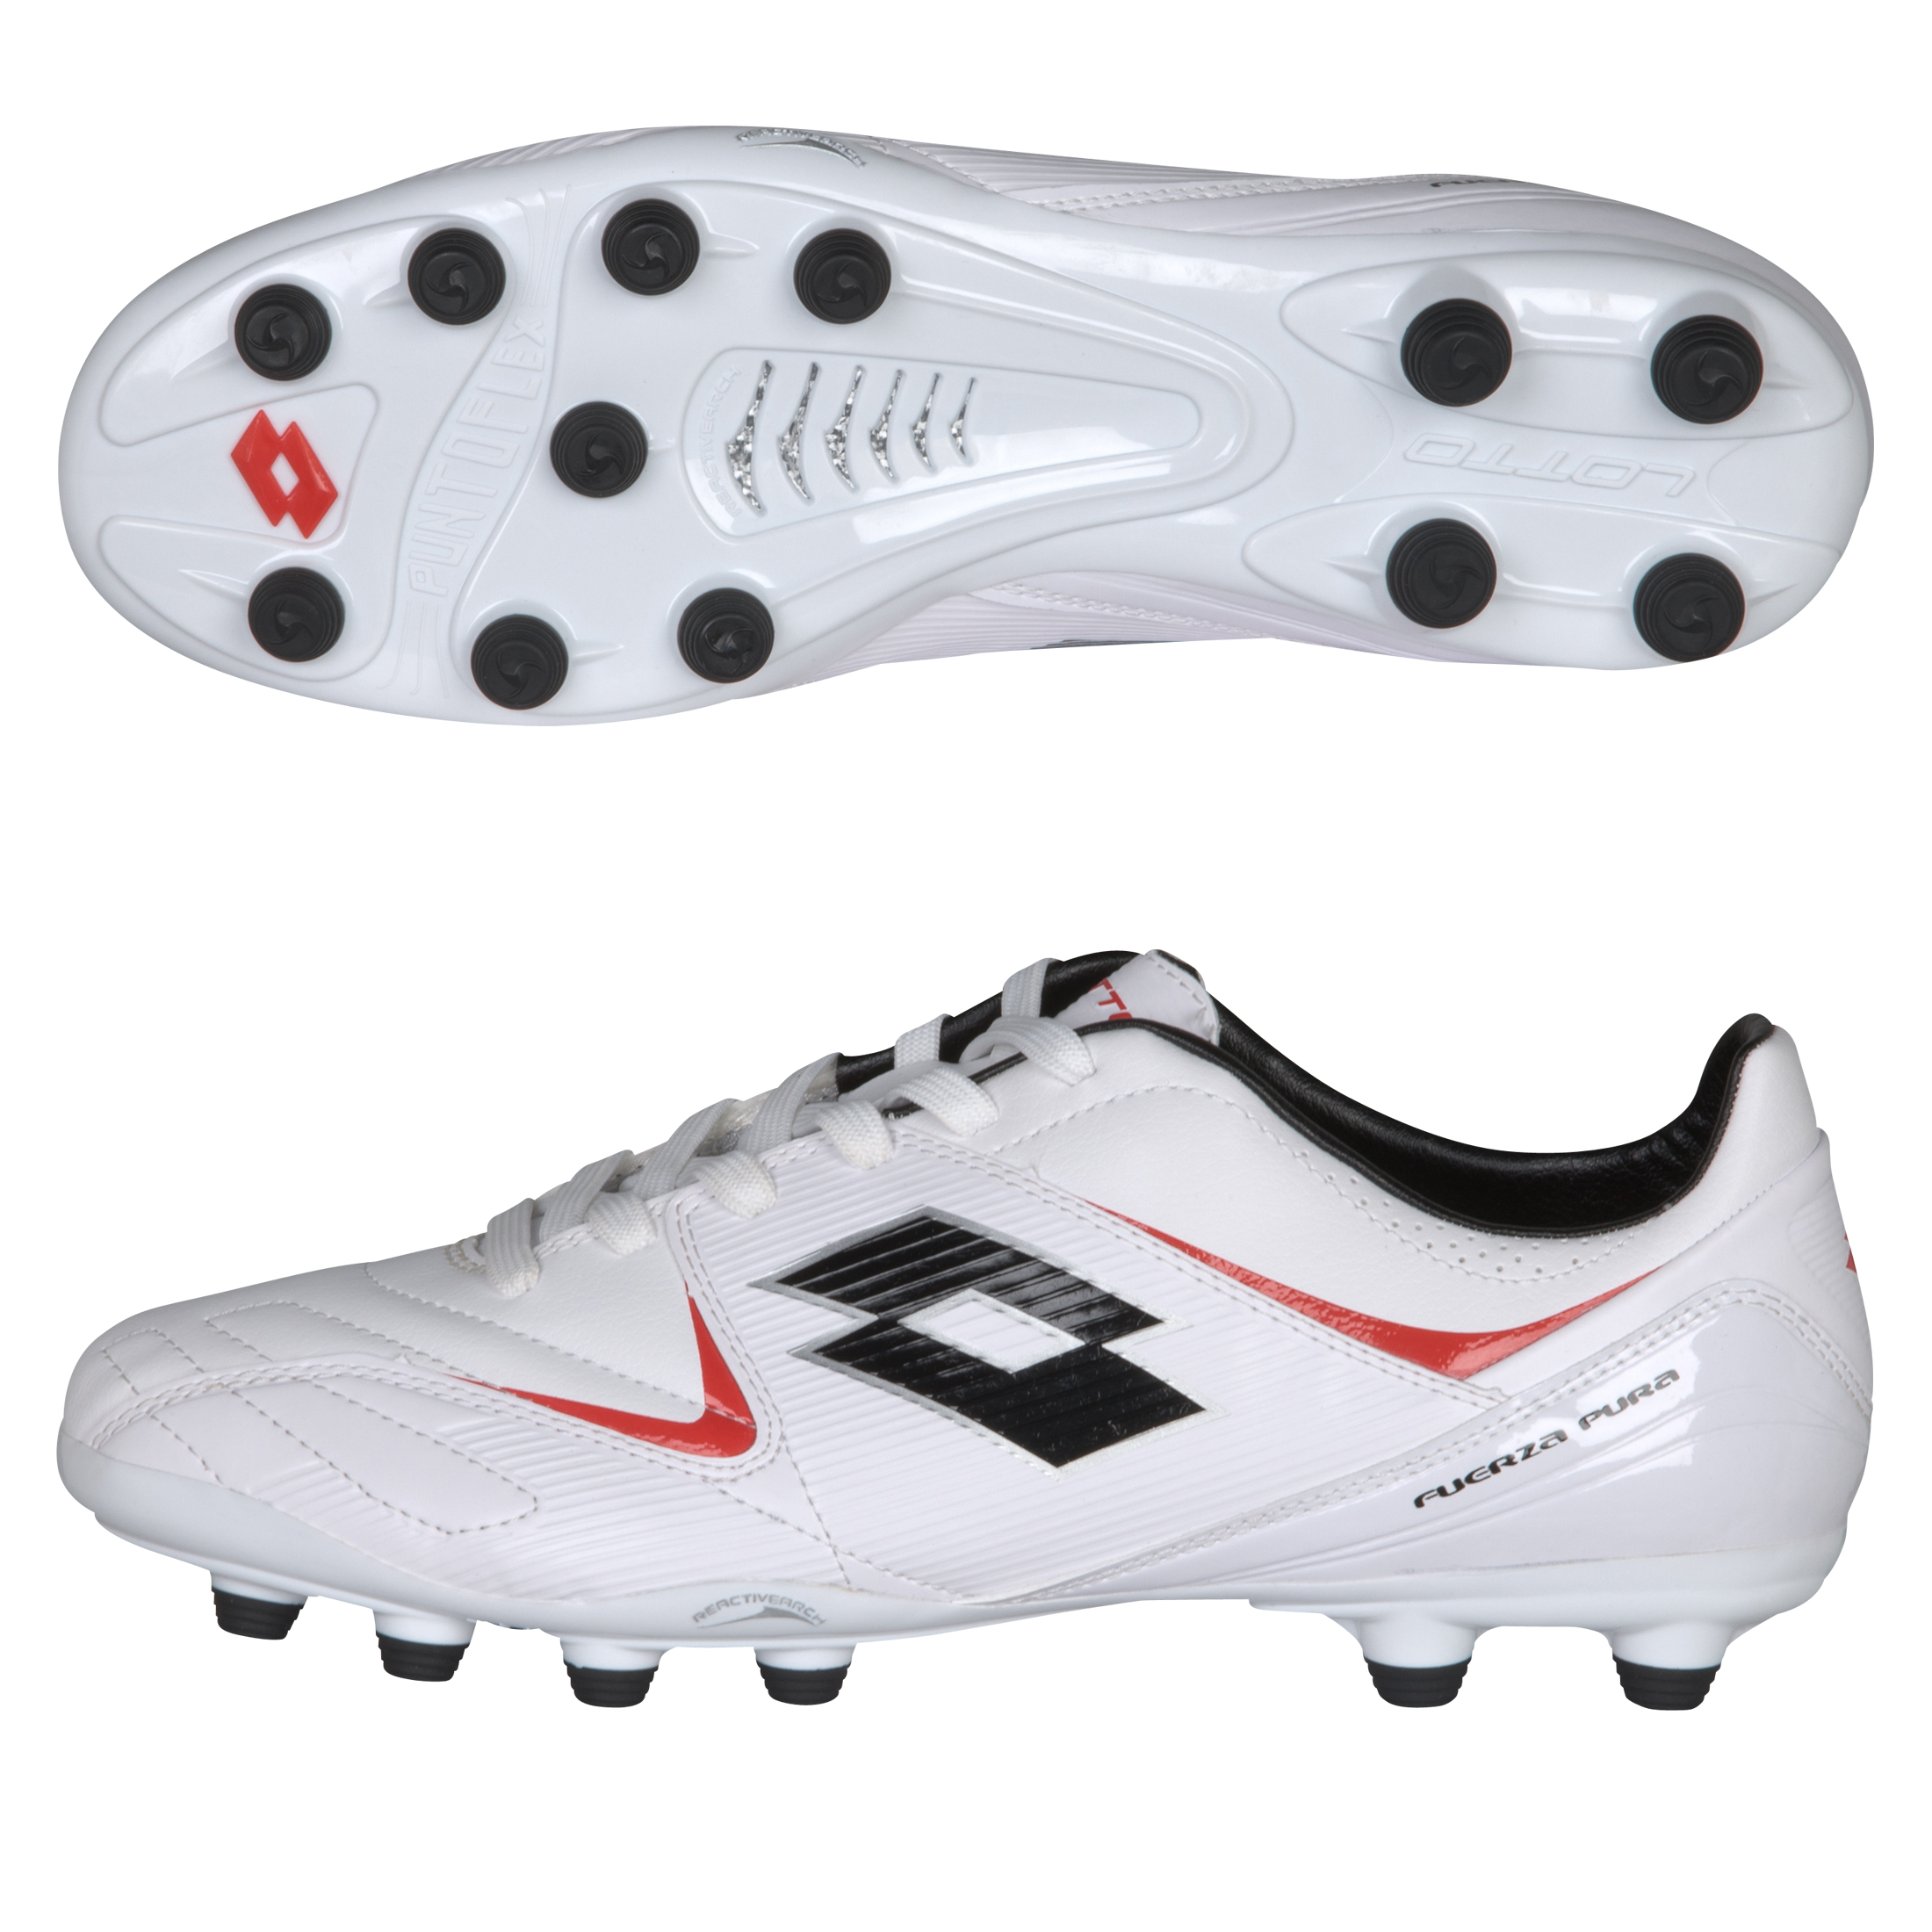 Lotto Fuerzapura II 500 Firm Ground Football Boots - White/Risk Red